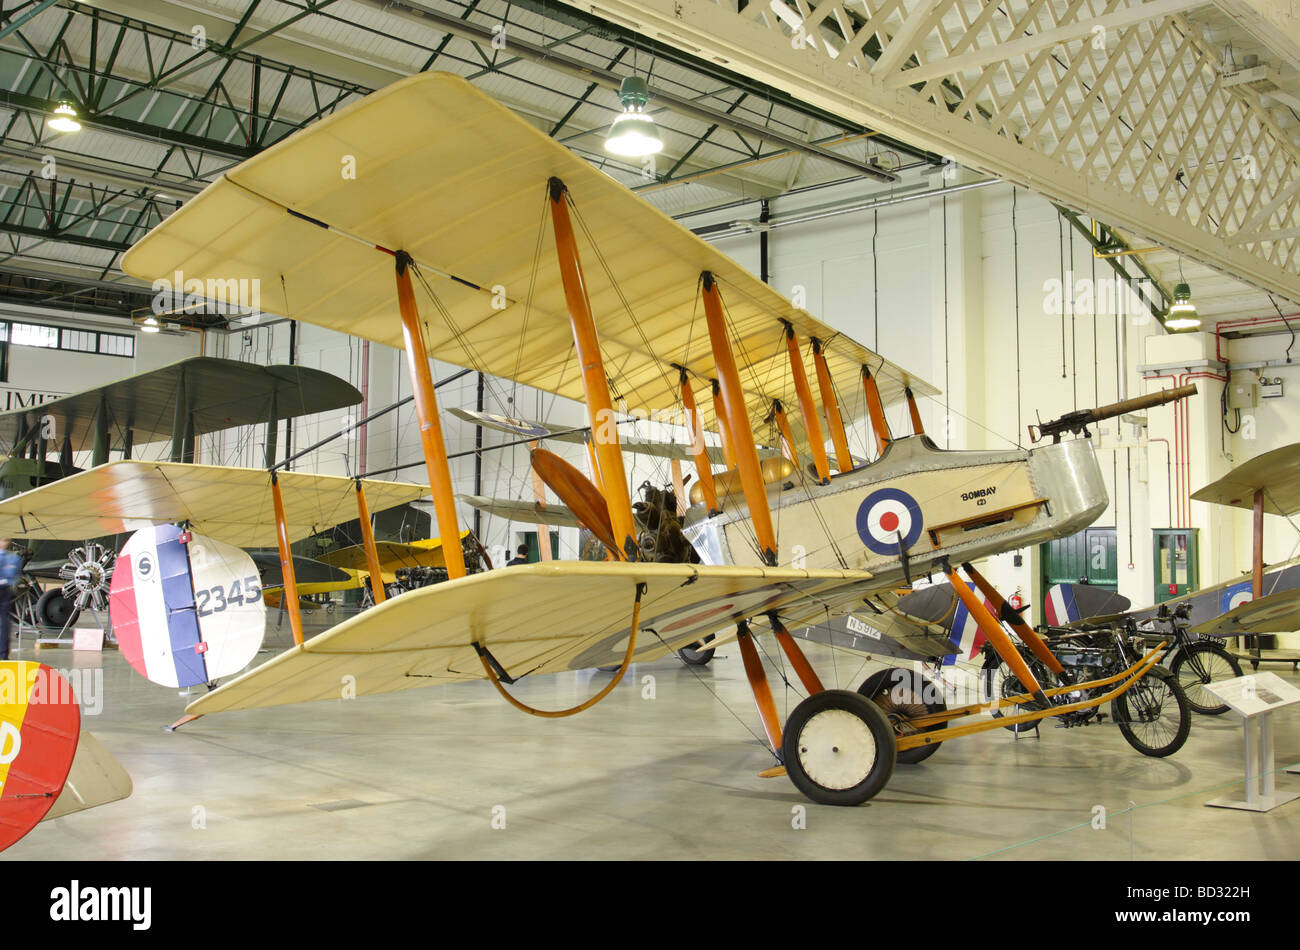 The Vickers F.B.5 currently on display in the Grahame-White Hangar, RAF Hendon, London. - Stock Image